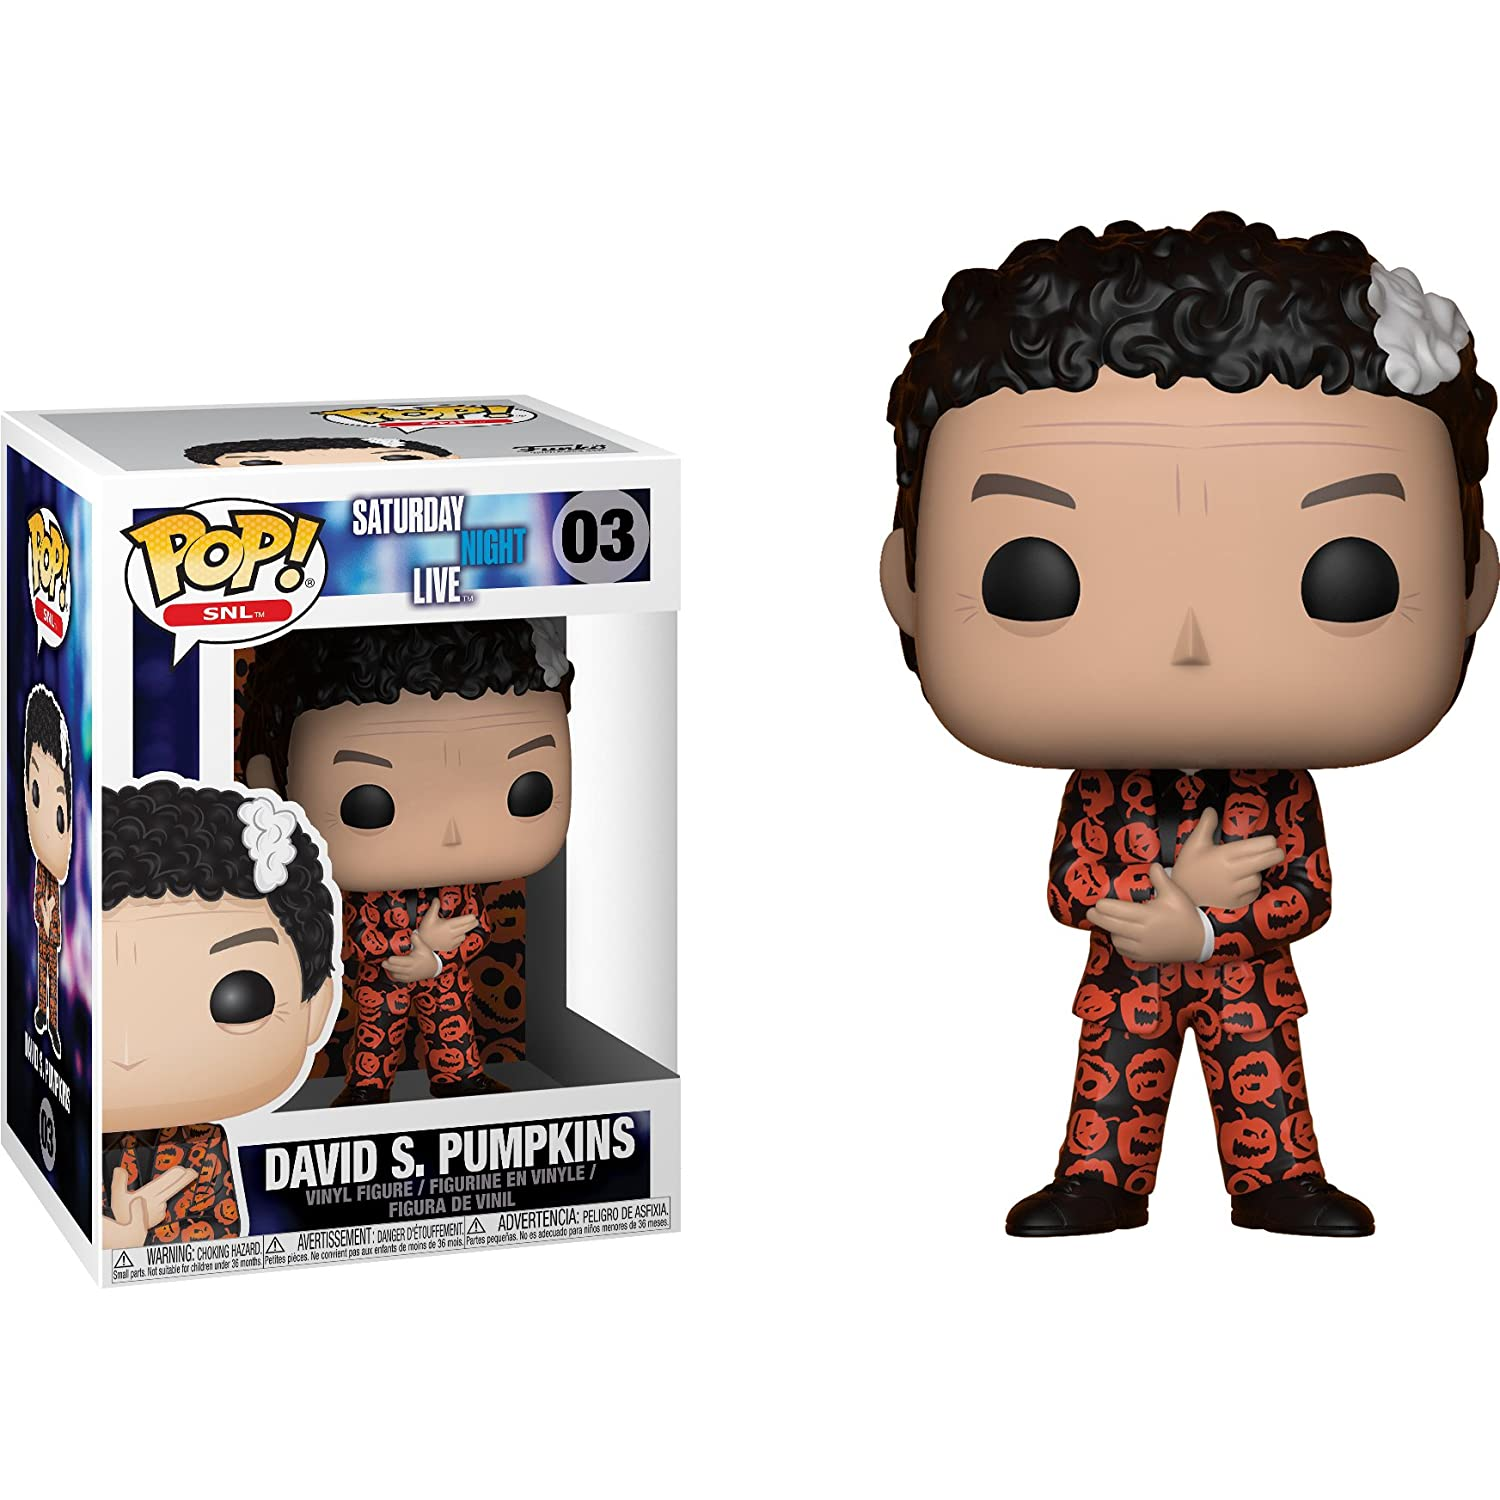 Funko Pop David S Pumpkins Collectible Toy 26777 Accessory Toys /& Games TV: Saturday Night Live